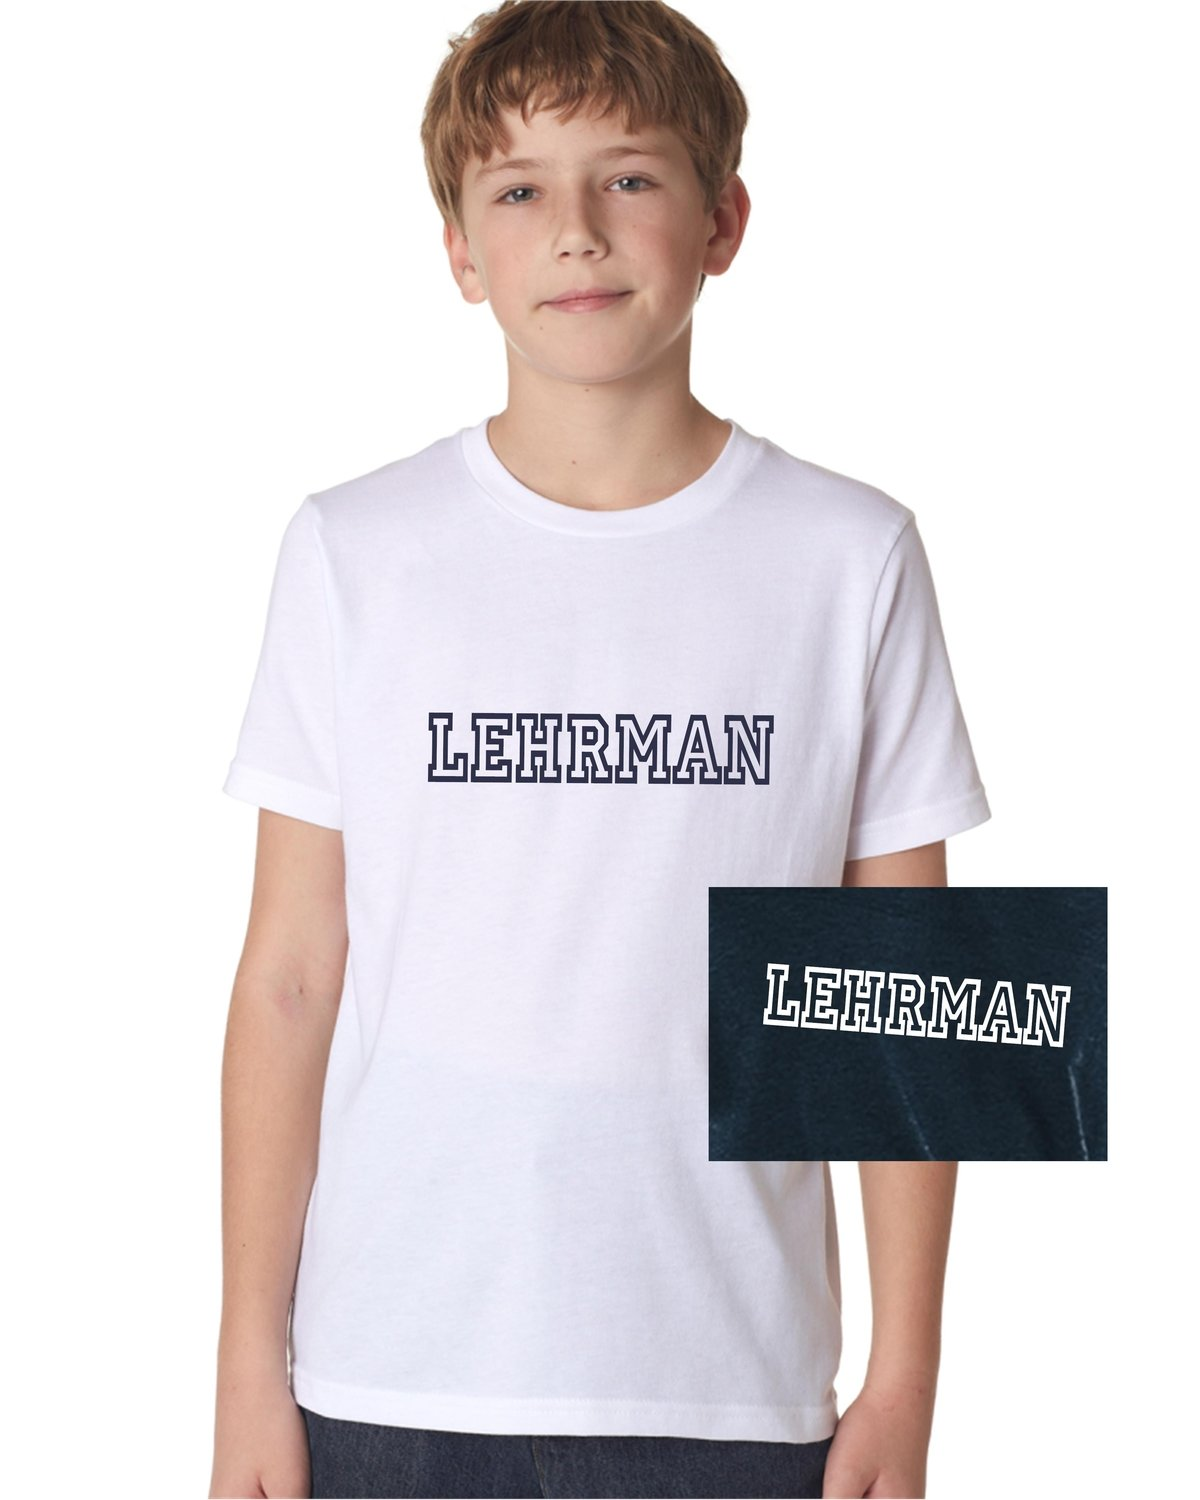 Lehrman Basic Unisex T-Shirt YOUTH